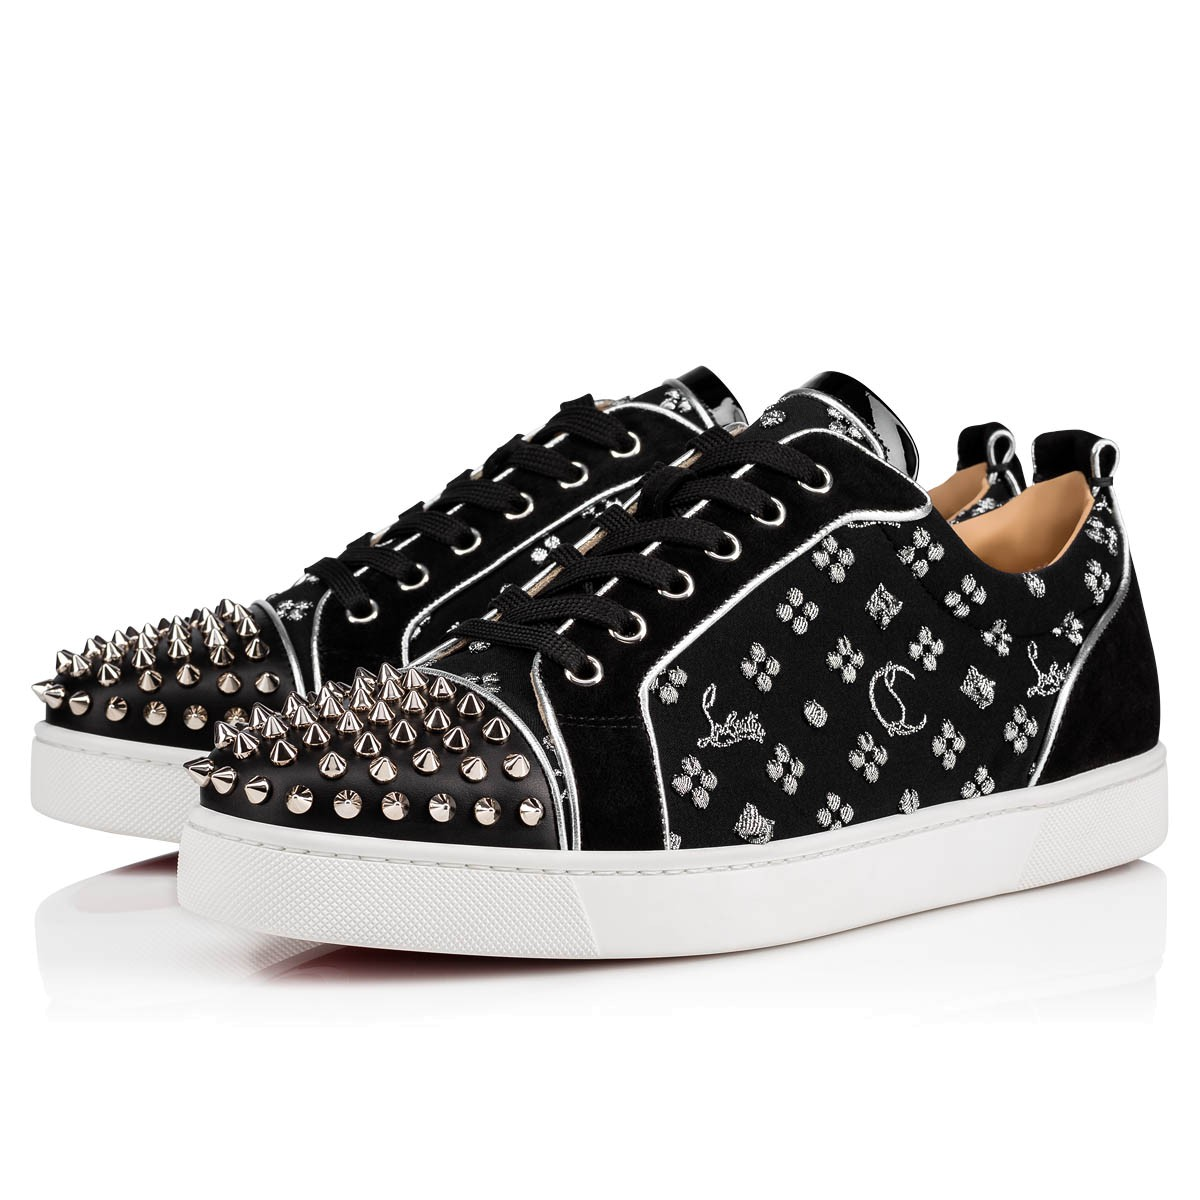 best website 43e80 e3804 Louis Junior Spikes Orlato Men's Flat Black/Silver Jacquard Loubi in the  Sky - Men Shoes - Christian Louboutin